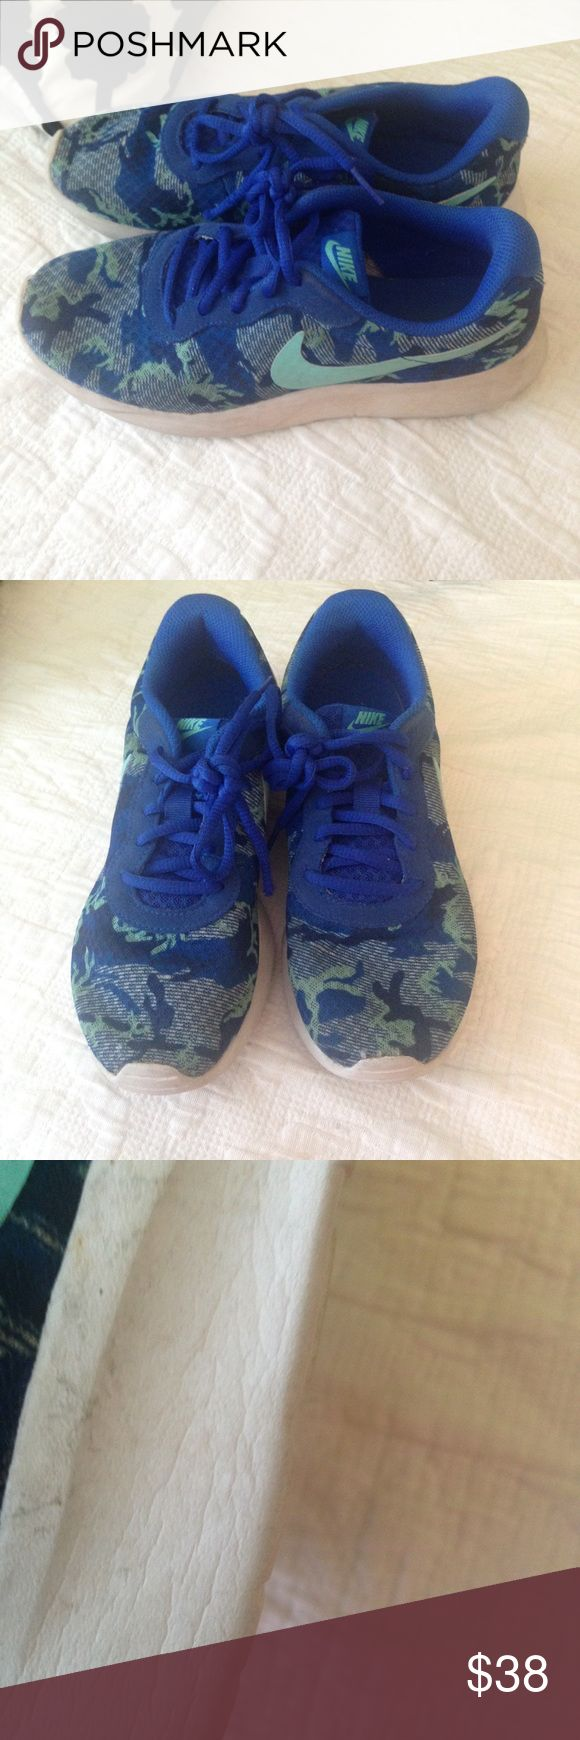 Nike shoe size 7 Super cute.good condition.i take rlly good care of these:) Nike Shoes Athletic Shoes